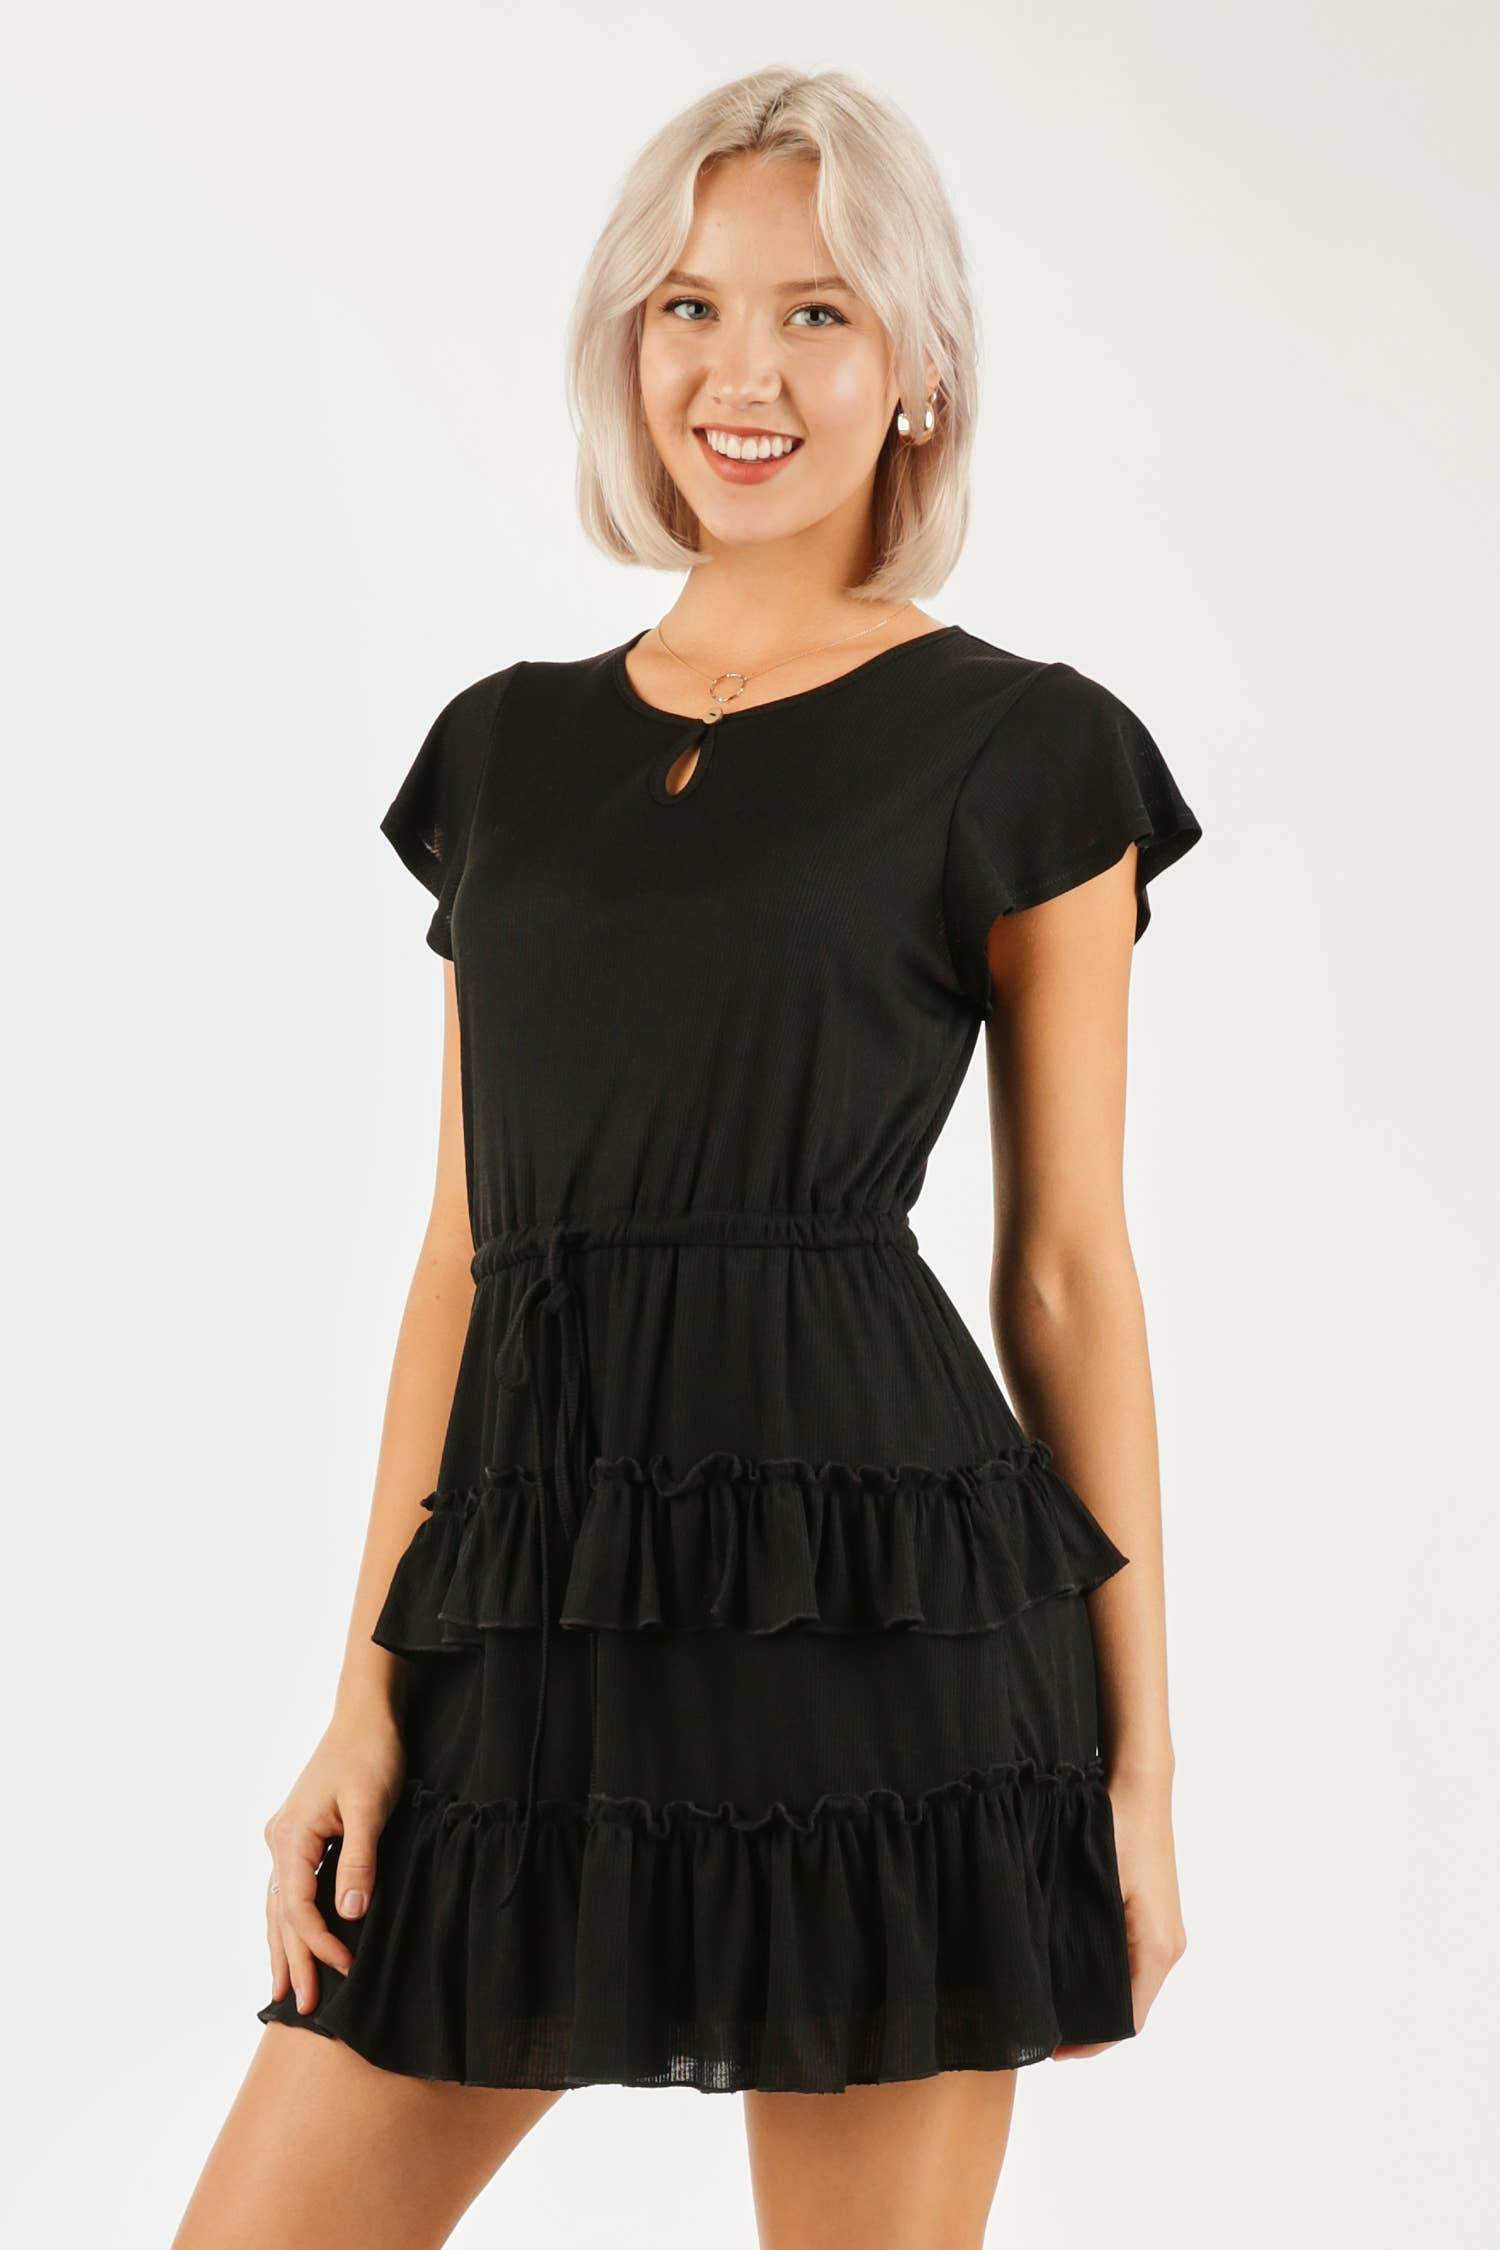 The Jessica Baby Doll Dress - Vida Boutique Inc.